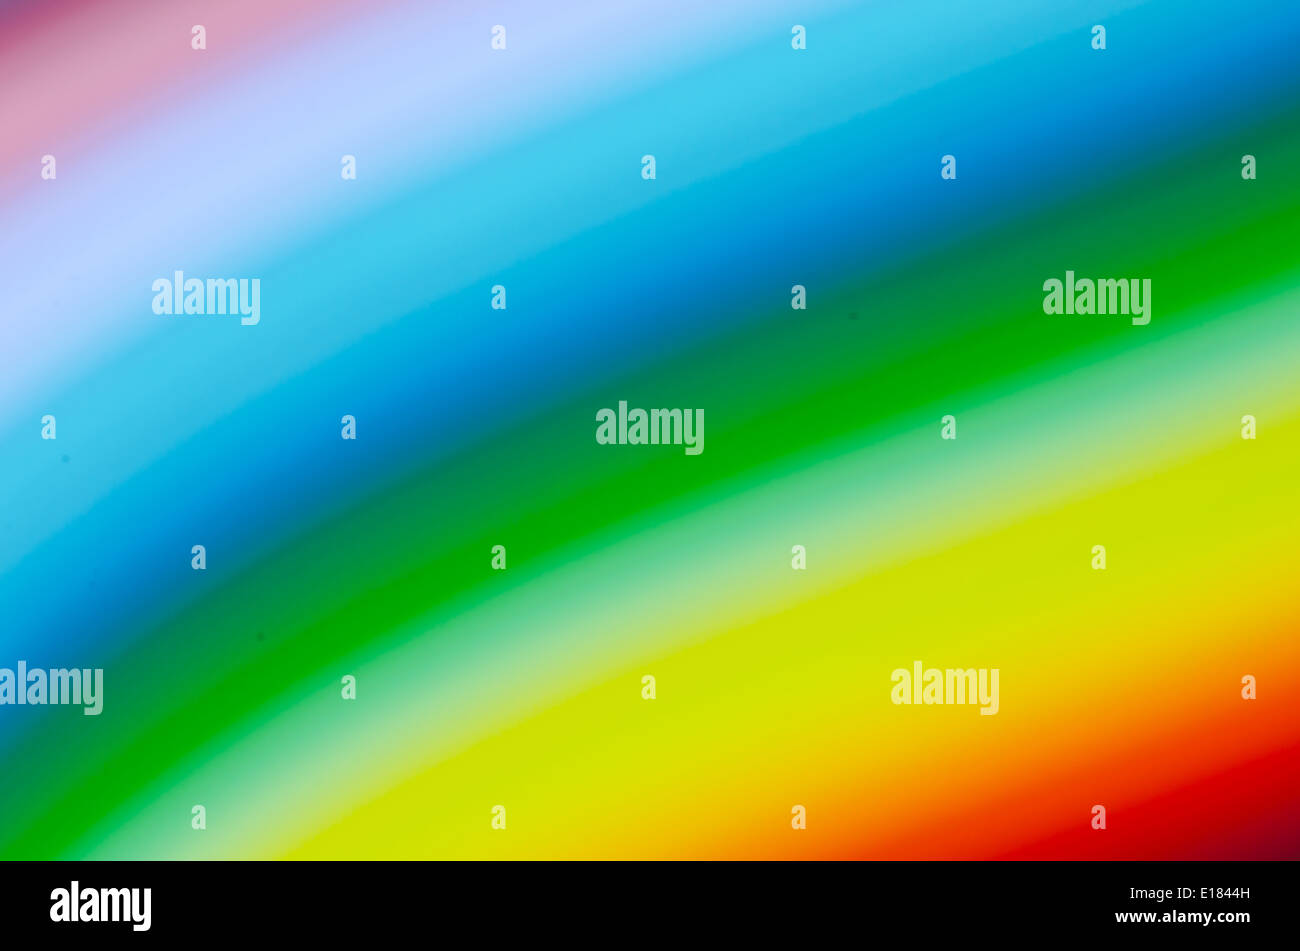 colorful abstract background in rainbow spectrum colors - Stock Image